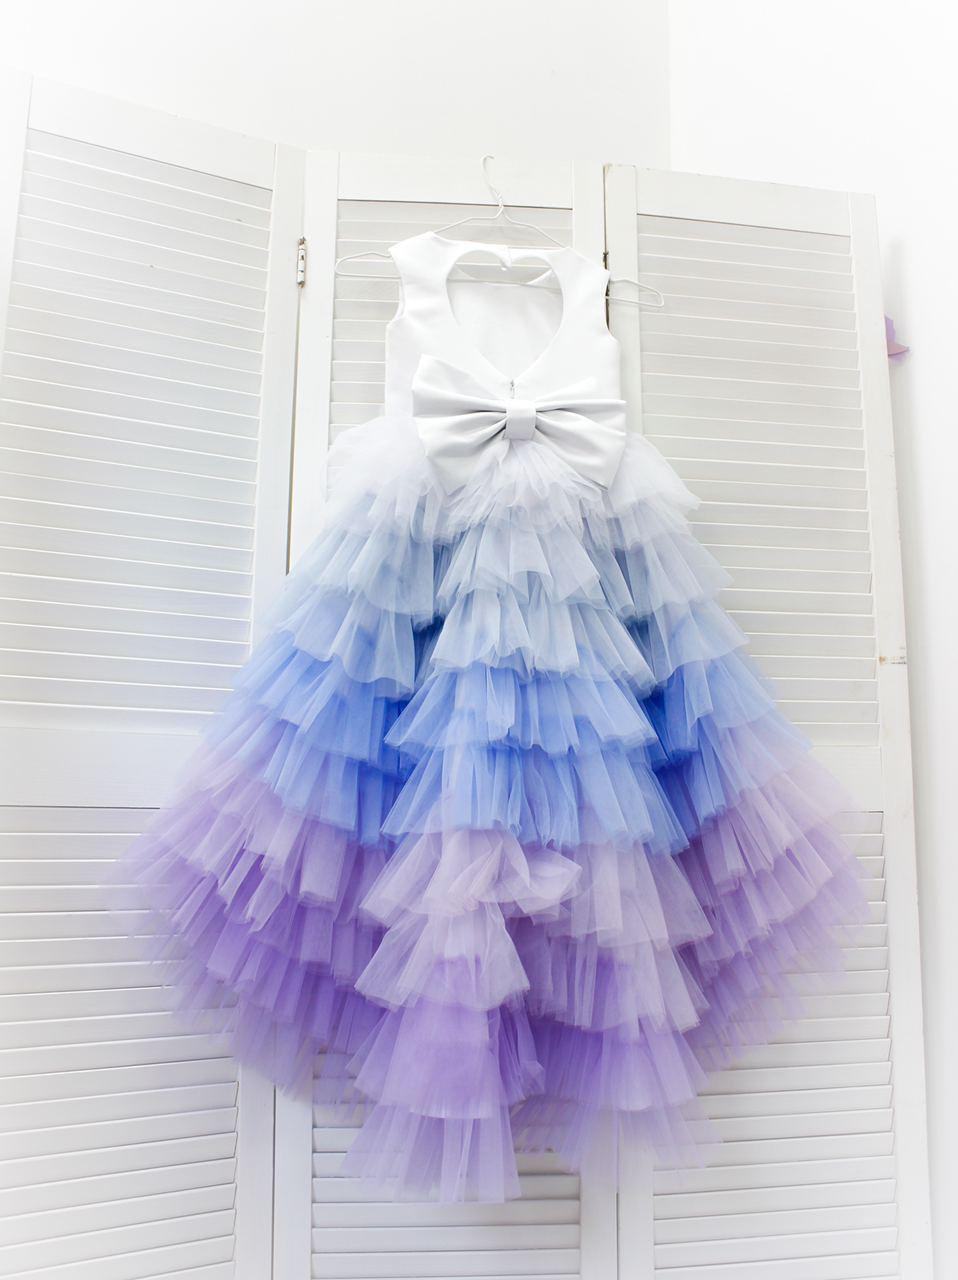 Multicolored Birthday Girl Dress, Flower Puffy Tutu Hi Lo Wedding Baby Outfit, First Ball Dress Princess